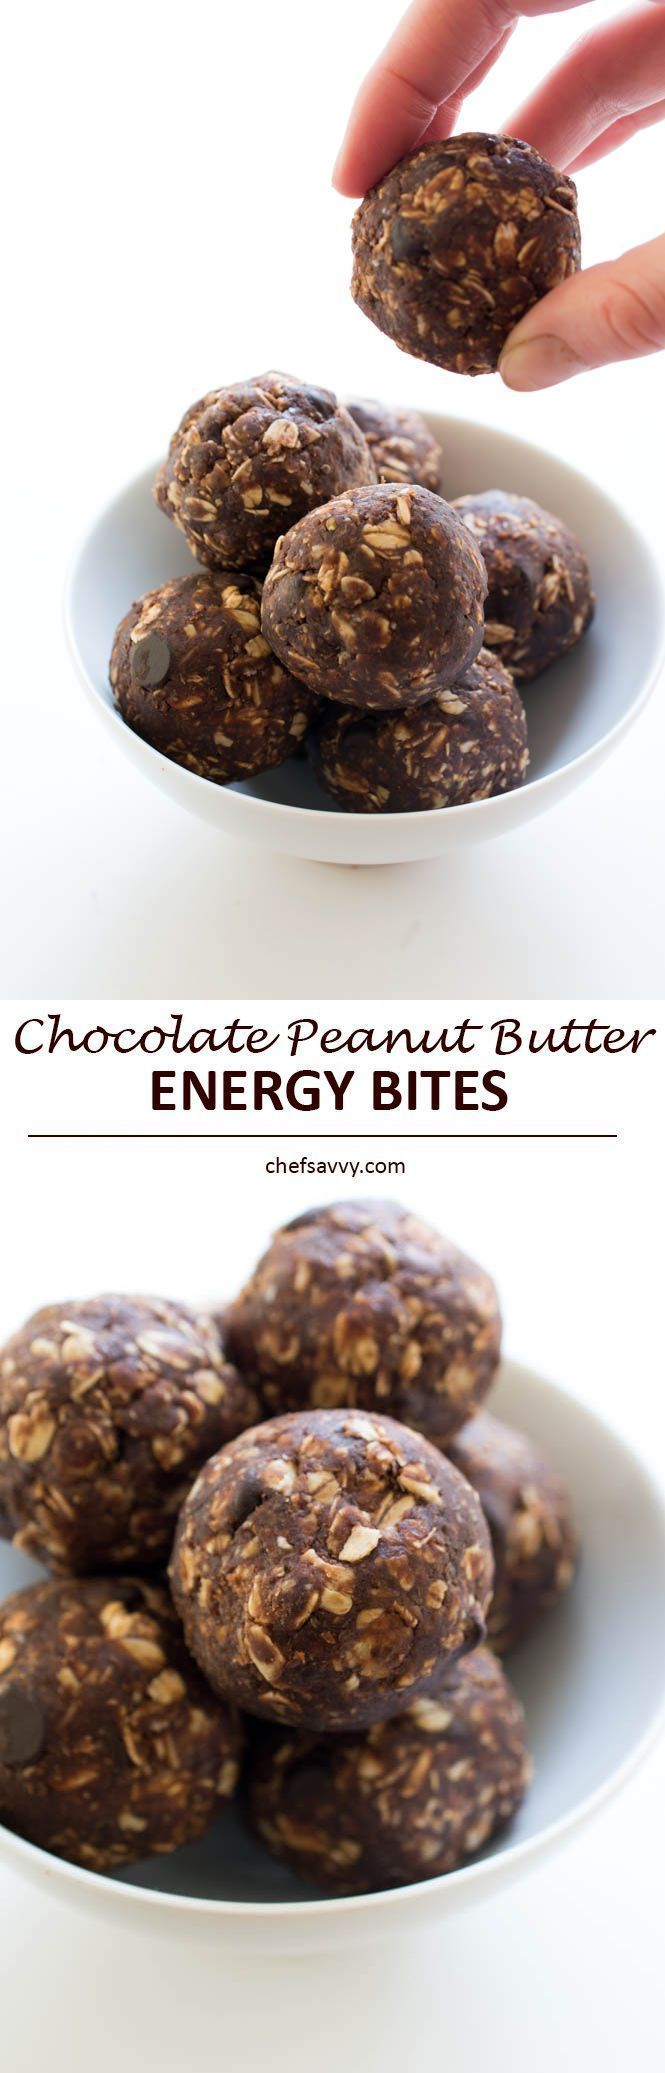 GotTa make these! | No Bake Chocolate Peanut Butter Energy Bites. Loaded with old fashioned oats, peanut butter, protein powder and flax seed. A healthy on the go protein packed snack! chefsavvy.com